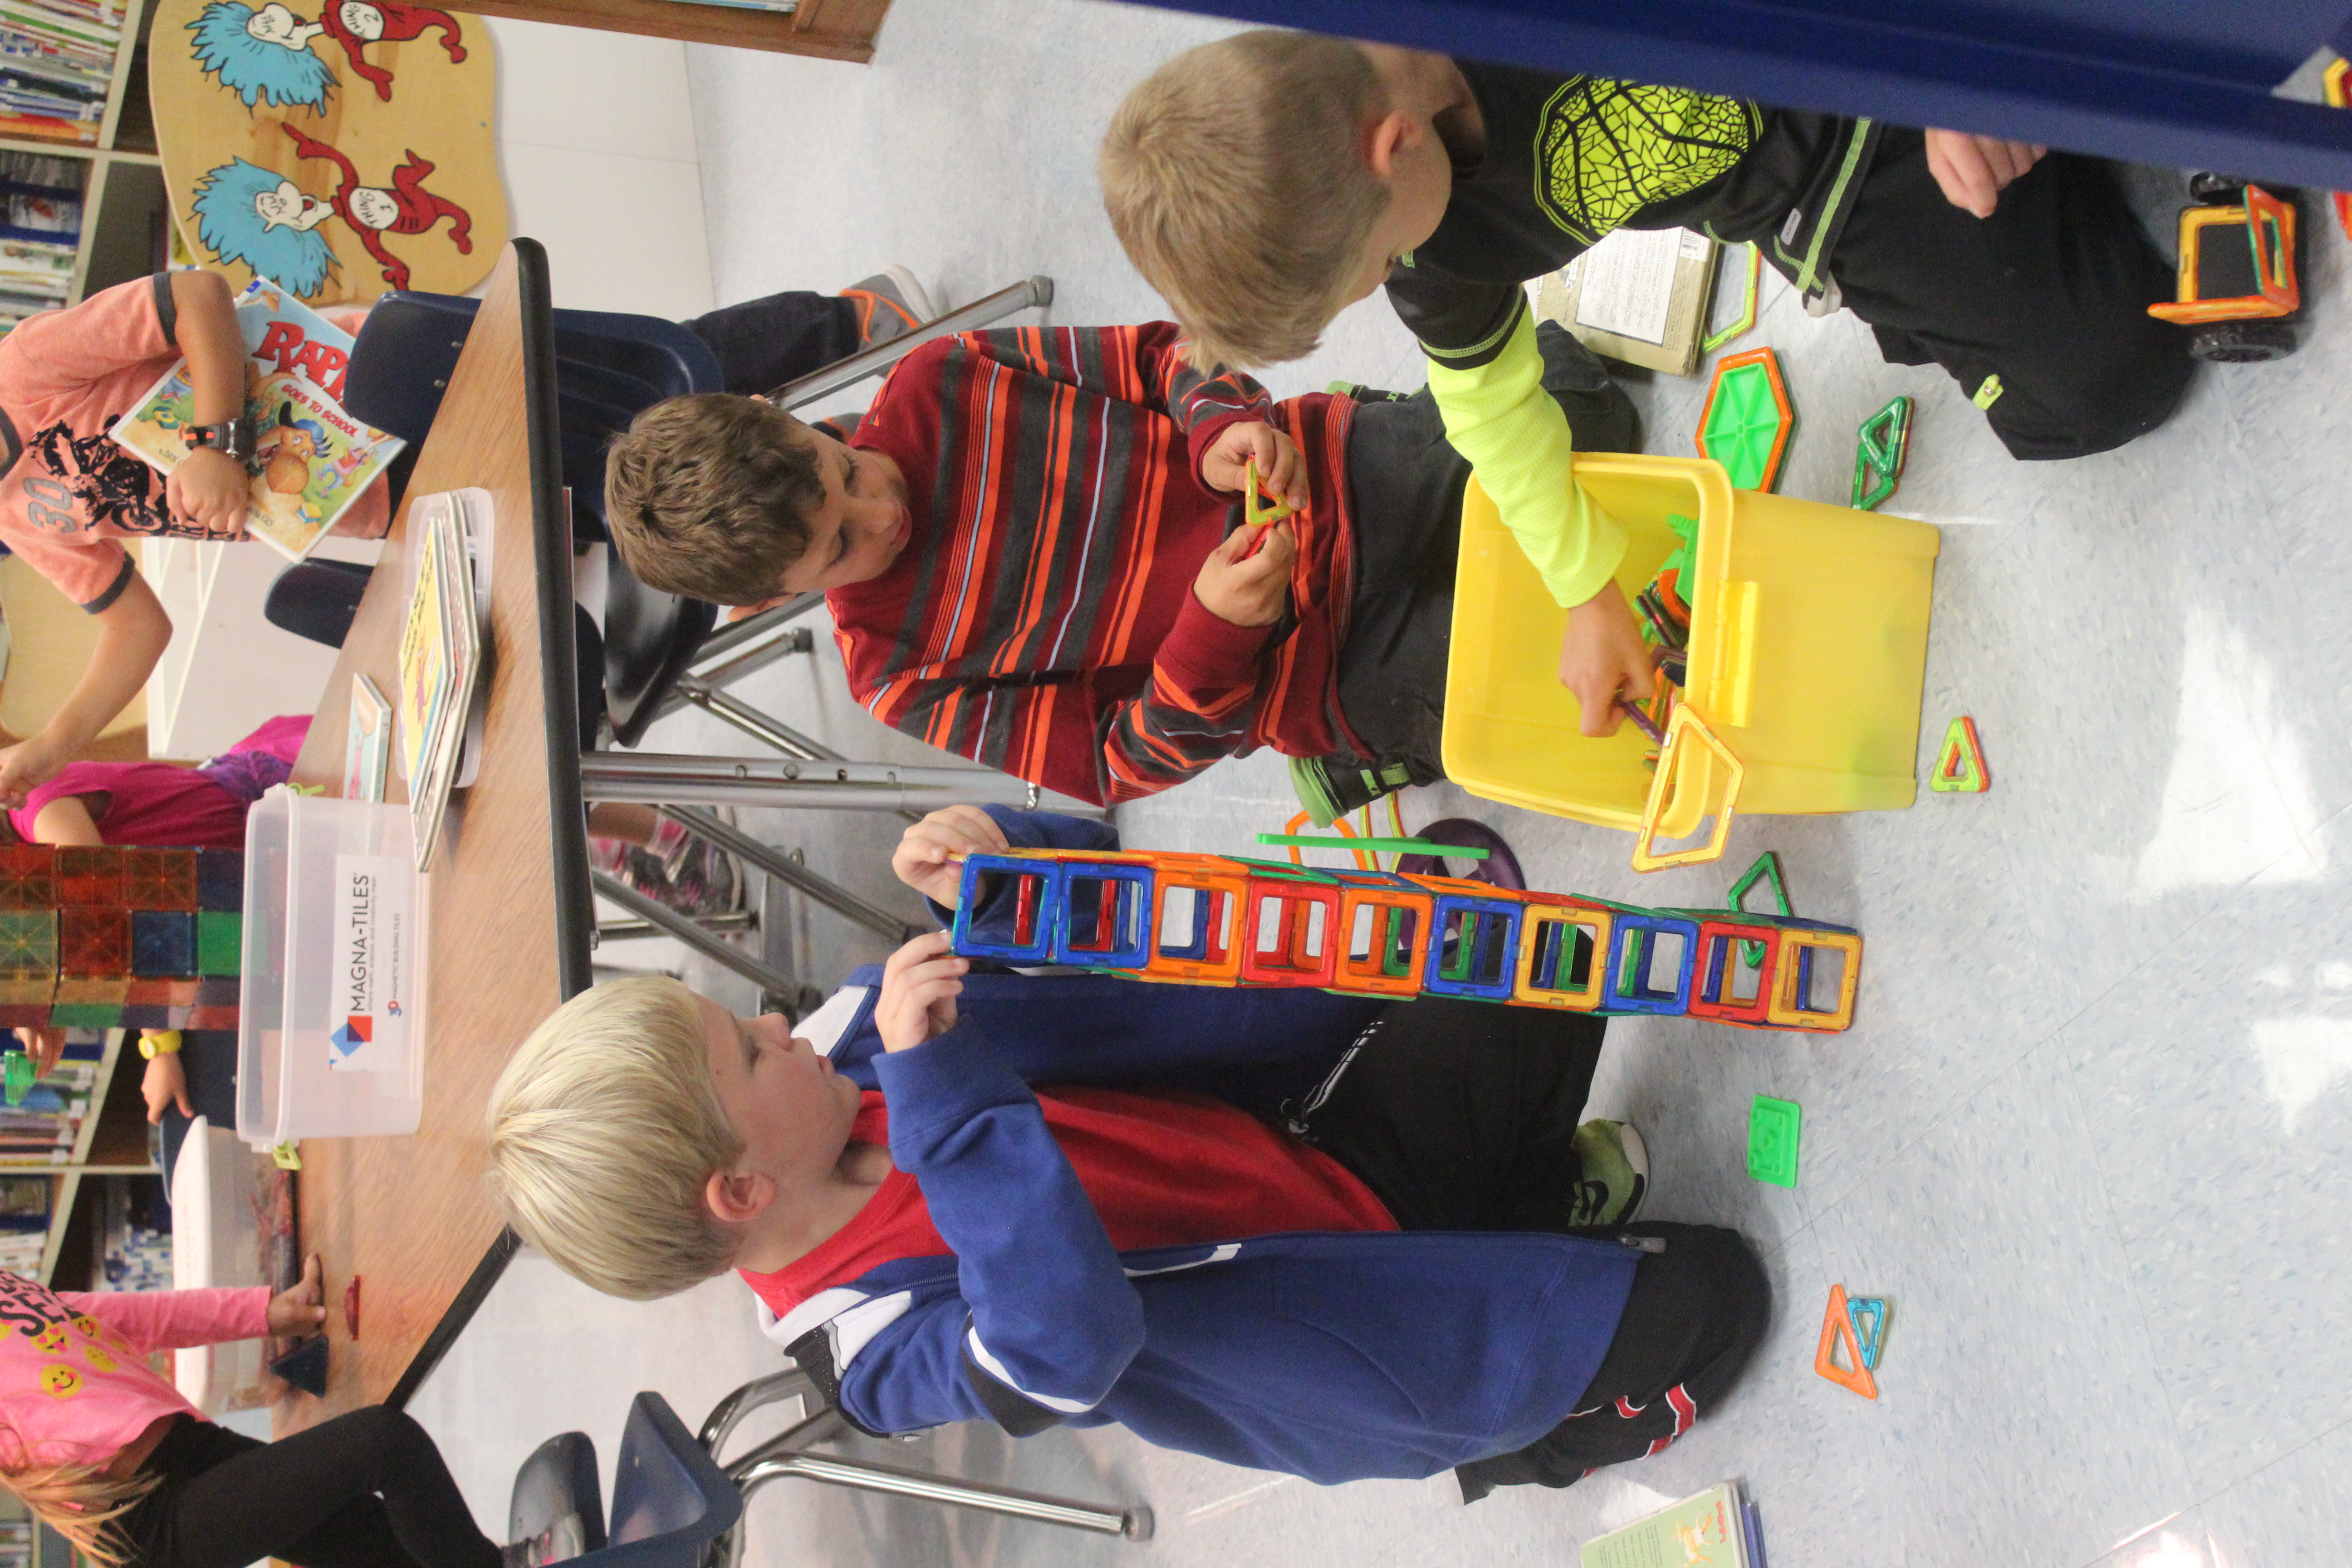 Three boys build a tower with magnetic blocks.